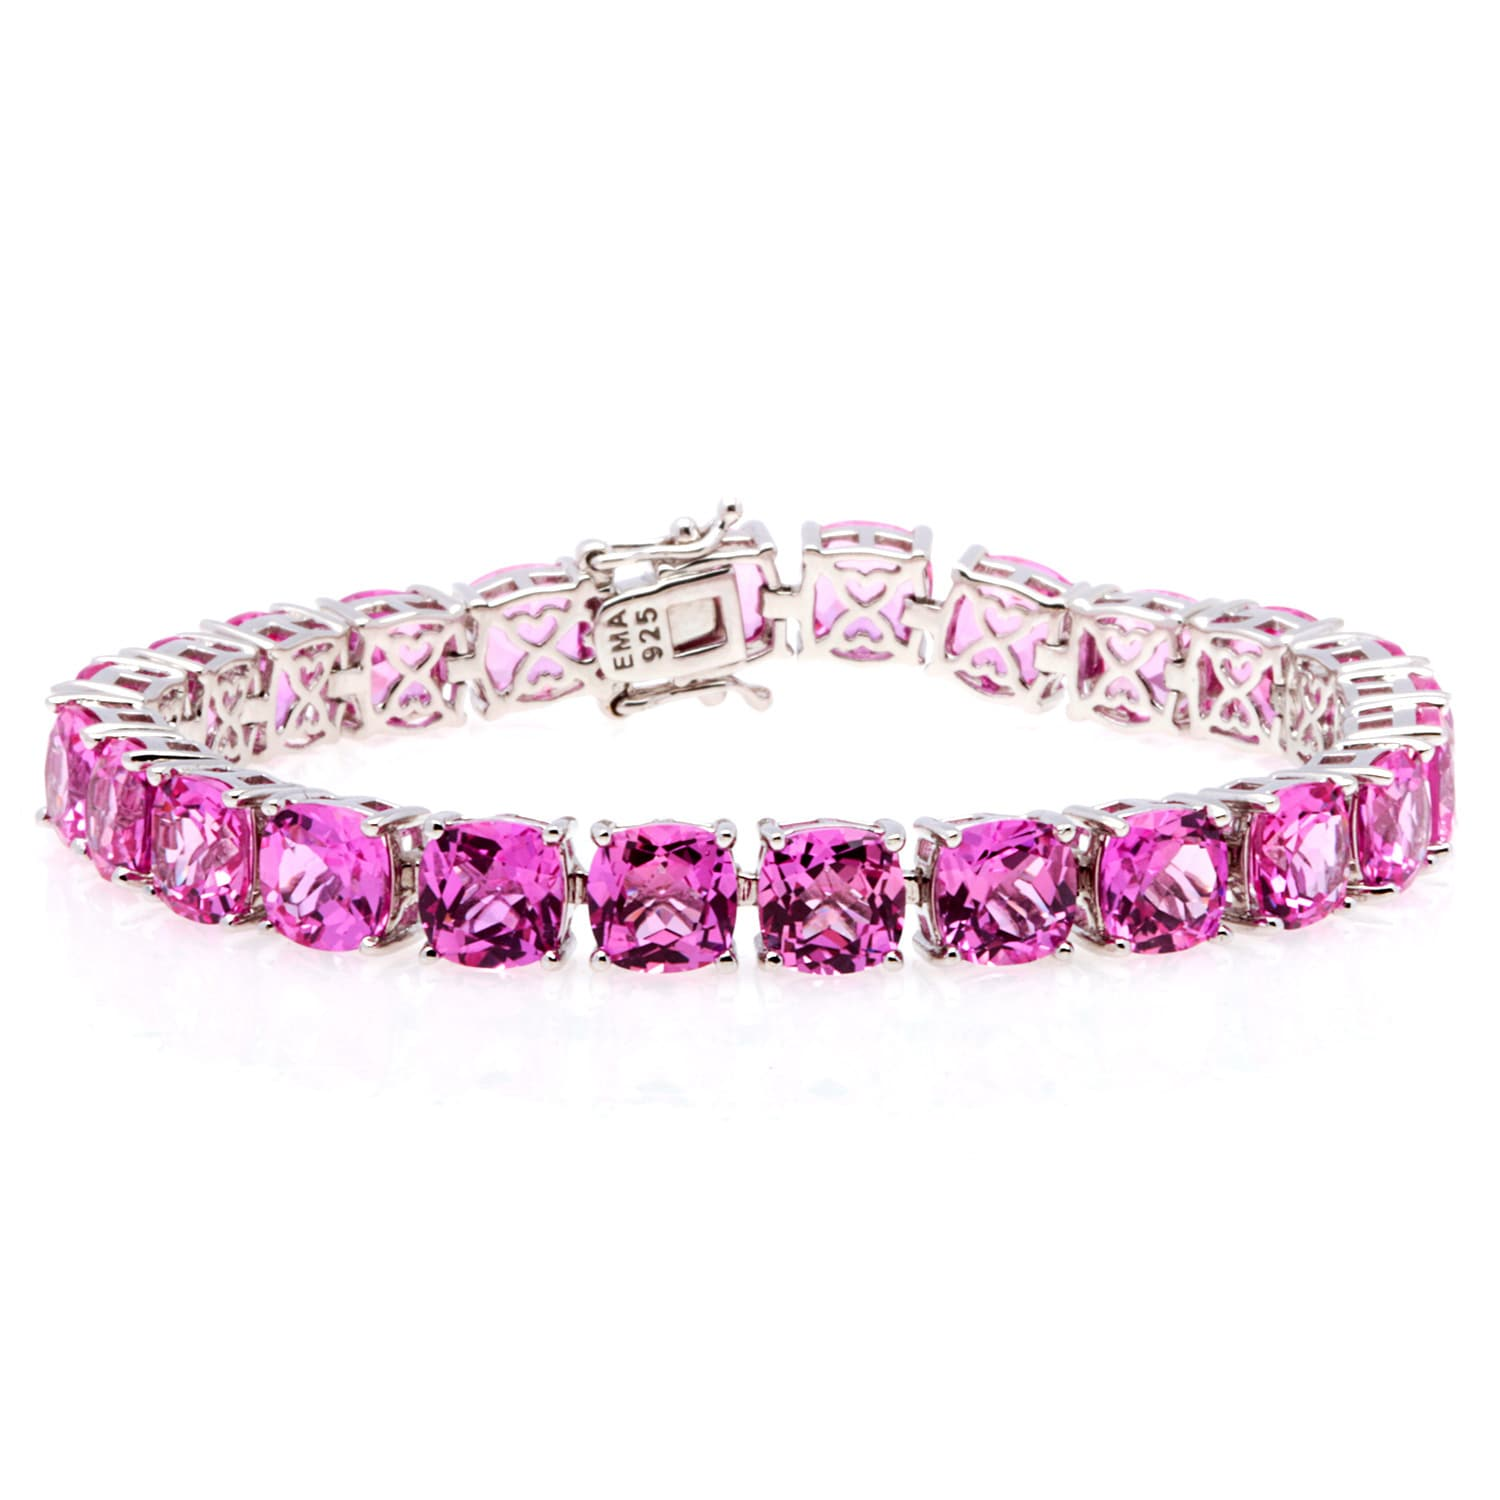 and overstock sapphire shipping i product sterling jewelry free watches heart miadora diamond silver h created today bracelet pink